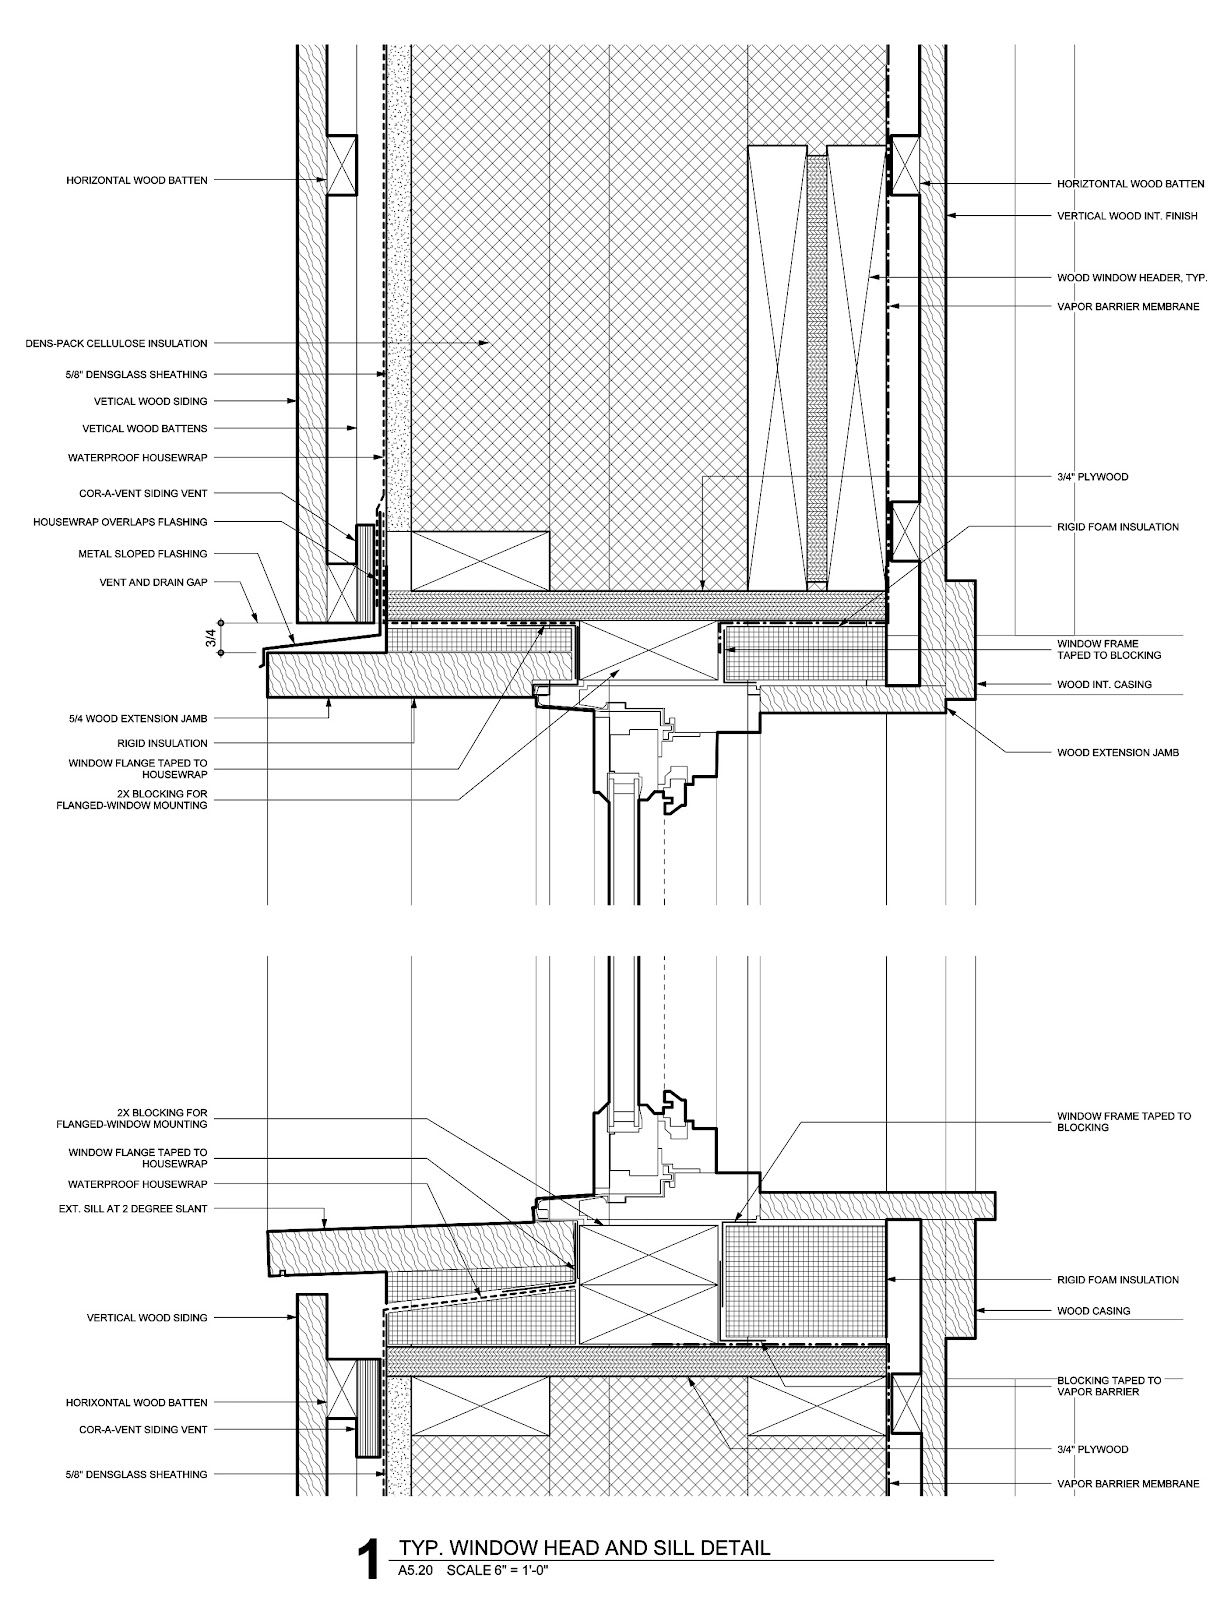 bay window construction detail ideasidea retrofit insulation detail bay window floor find this pin and more on detail by plattearchi